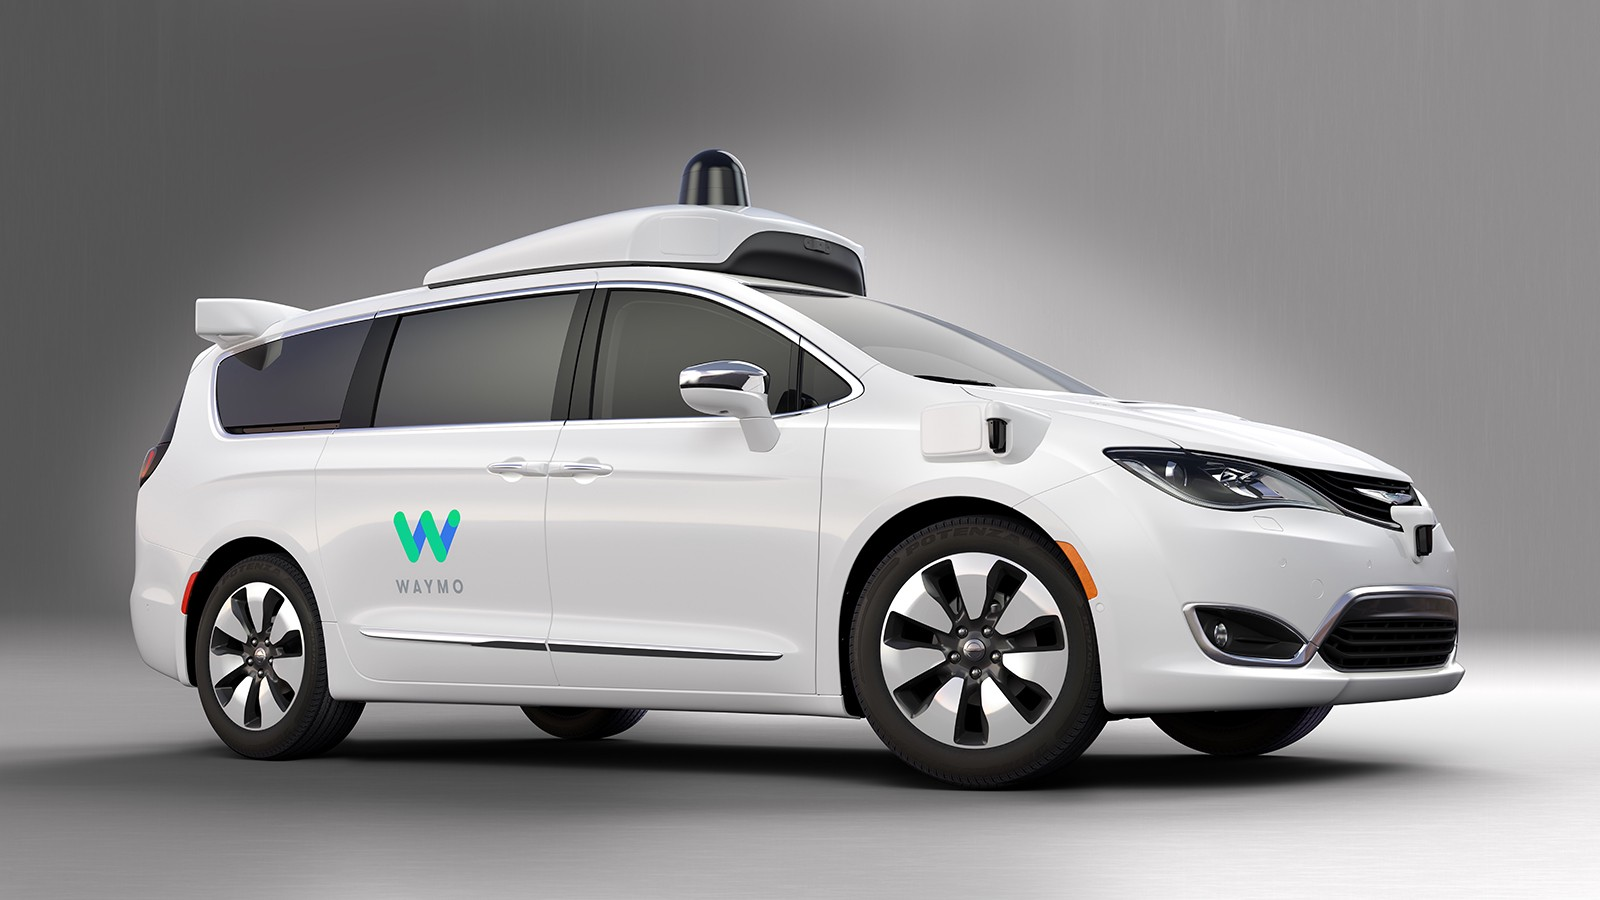 Google's Self-Driving Minivans Will Hit the Roads by End of January